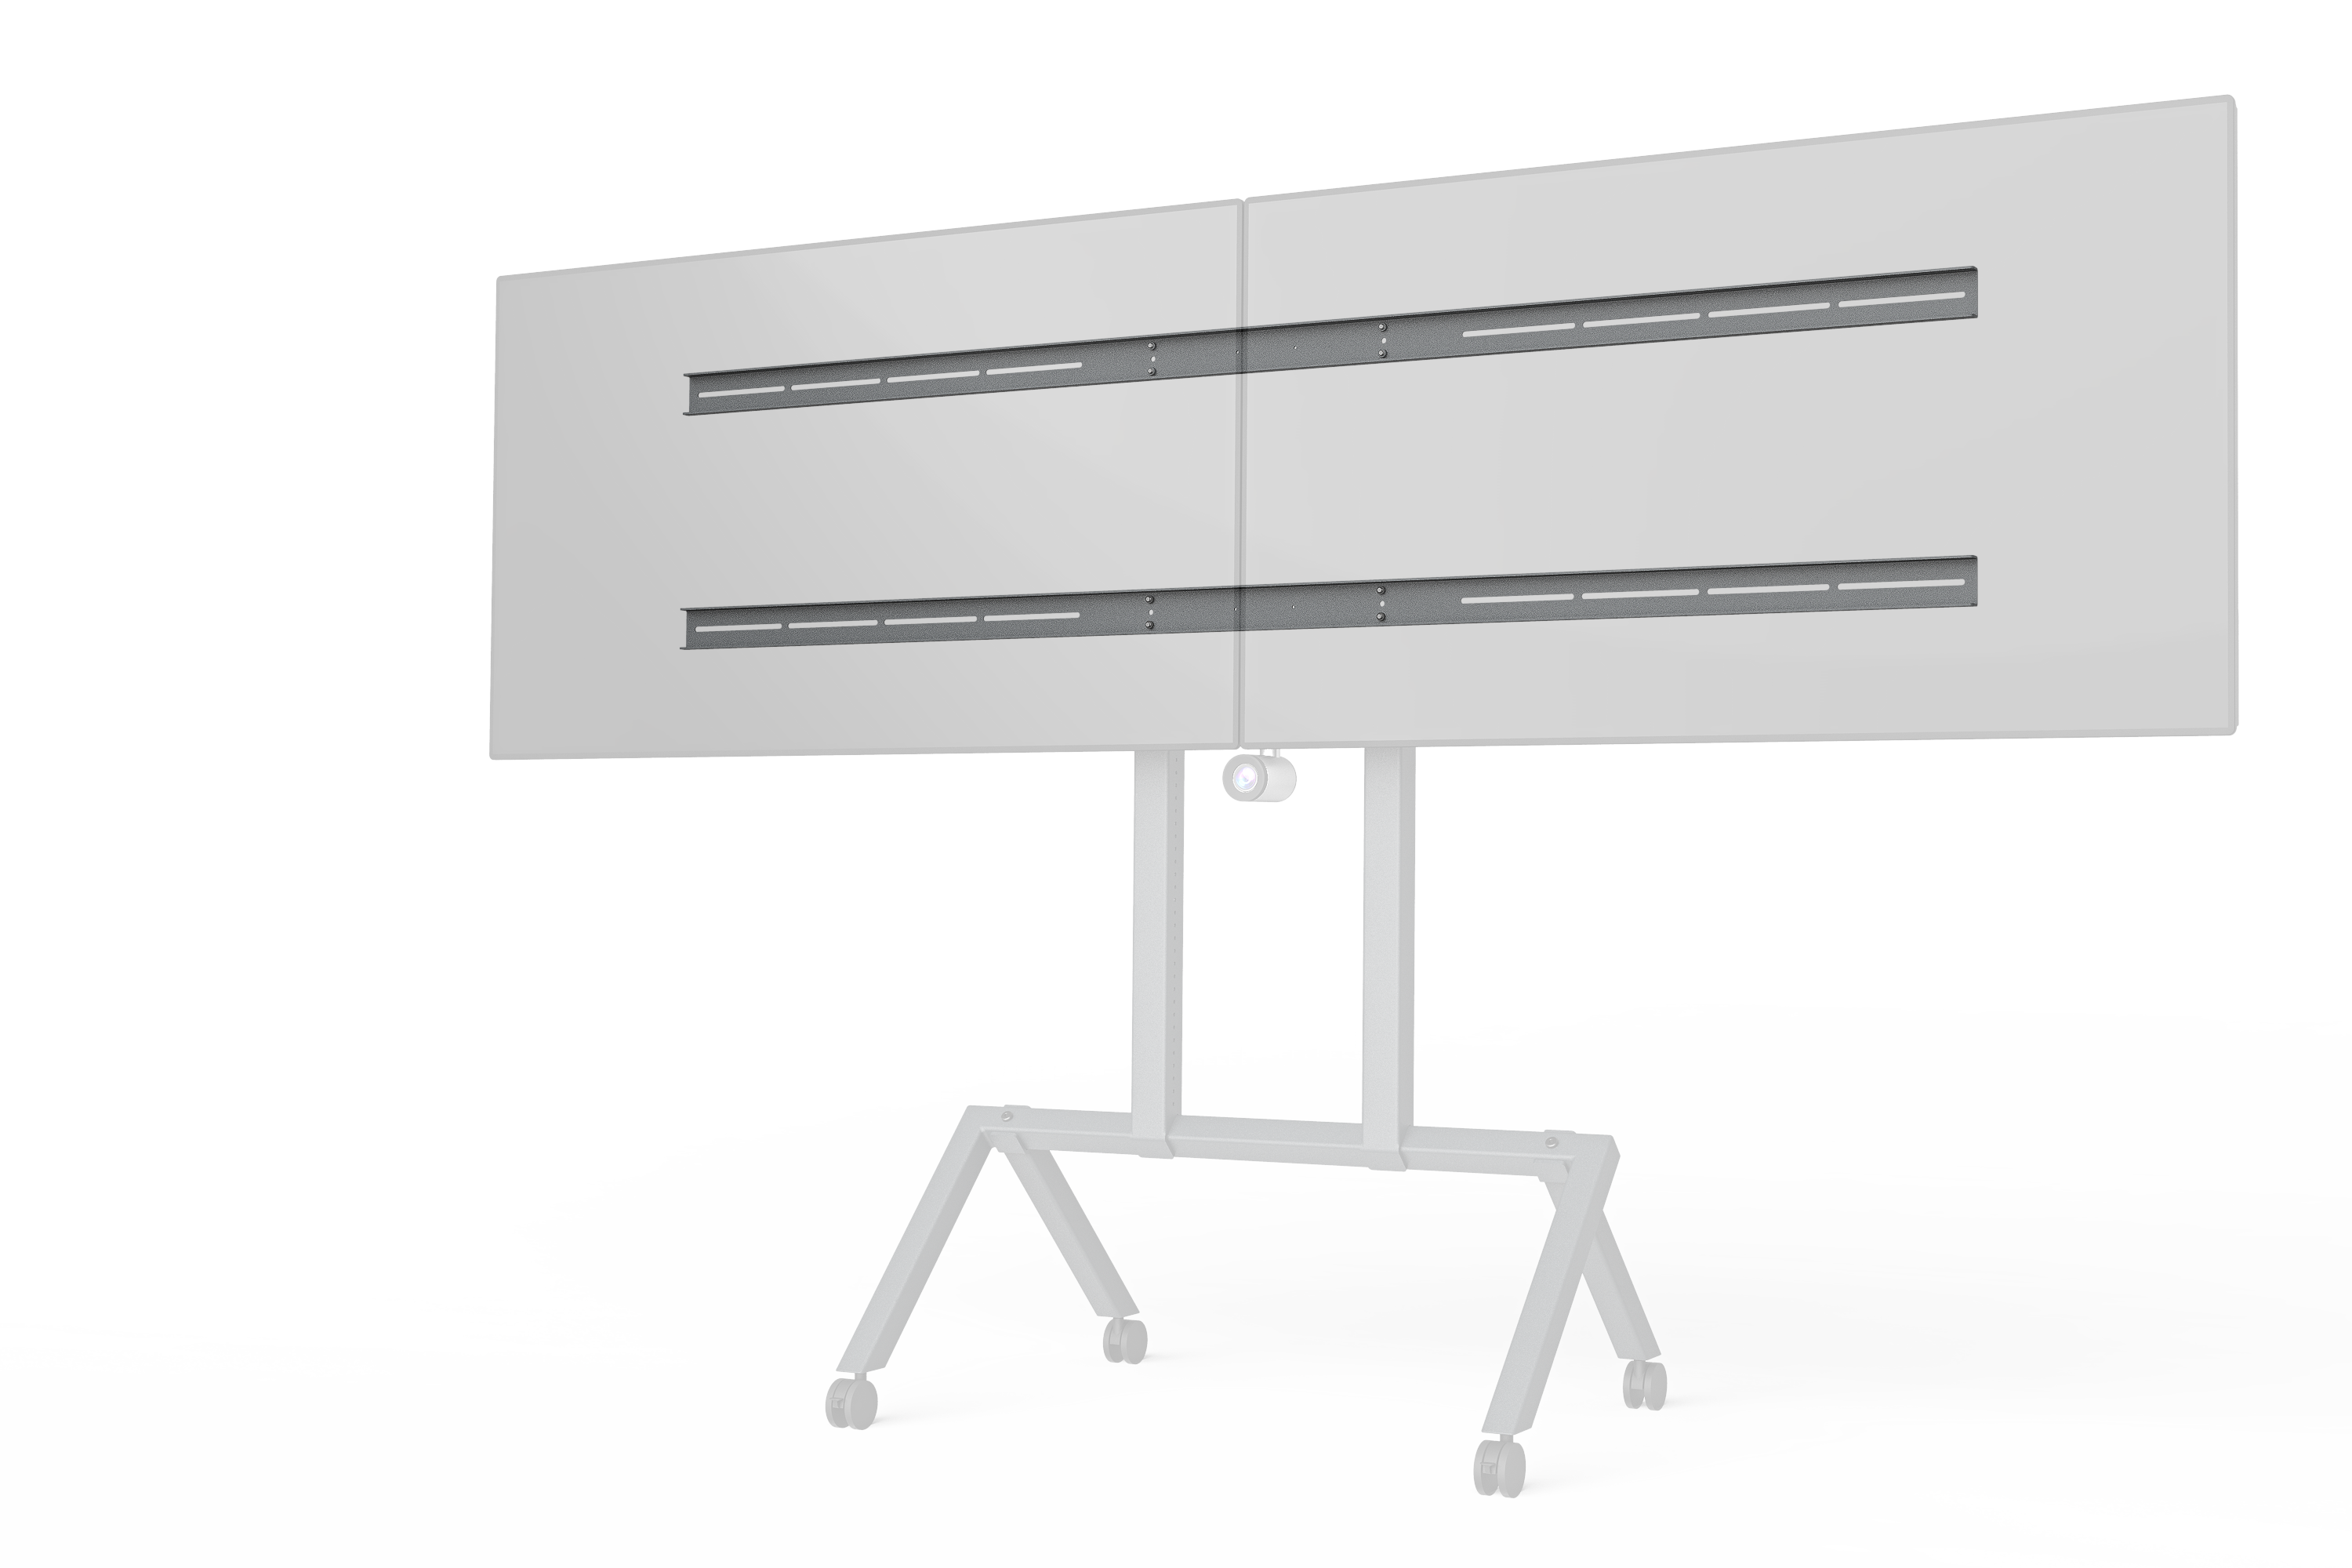 Dual Display Kit for Heckler AV Cart